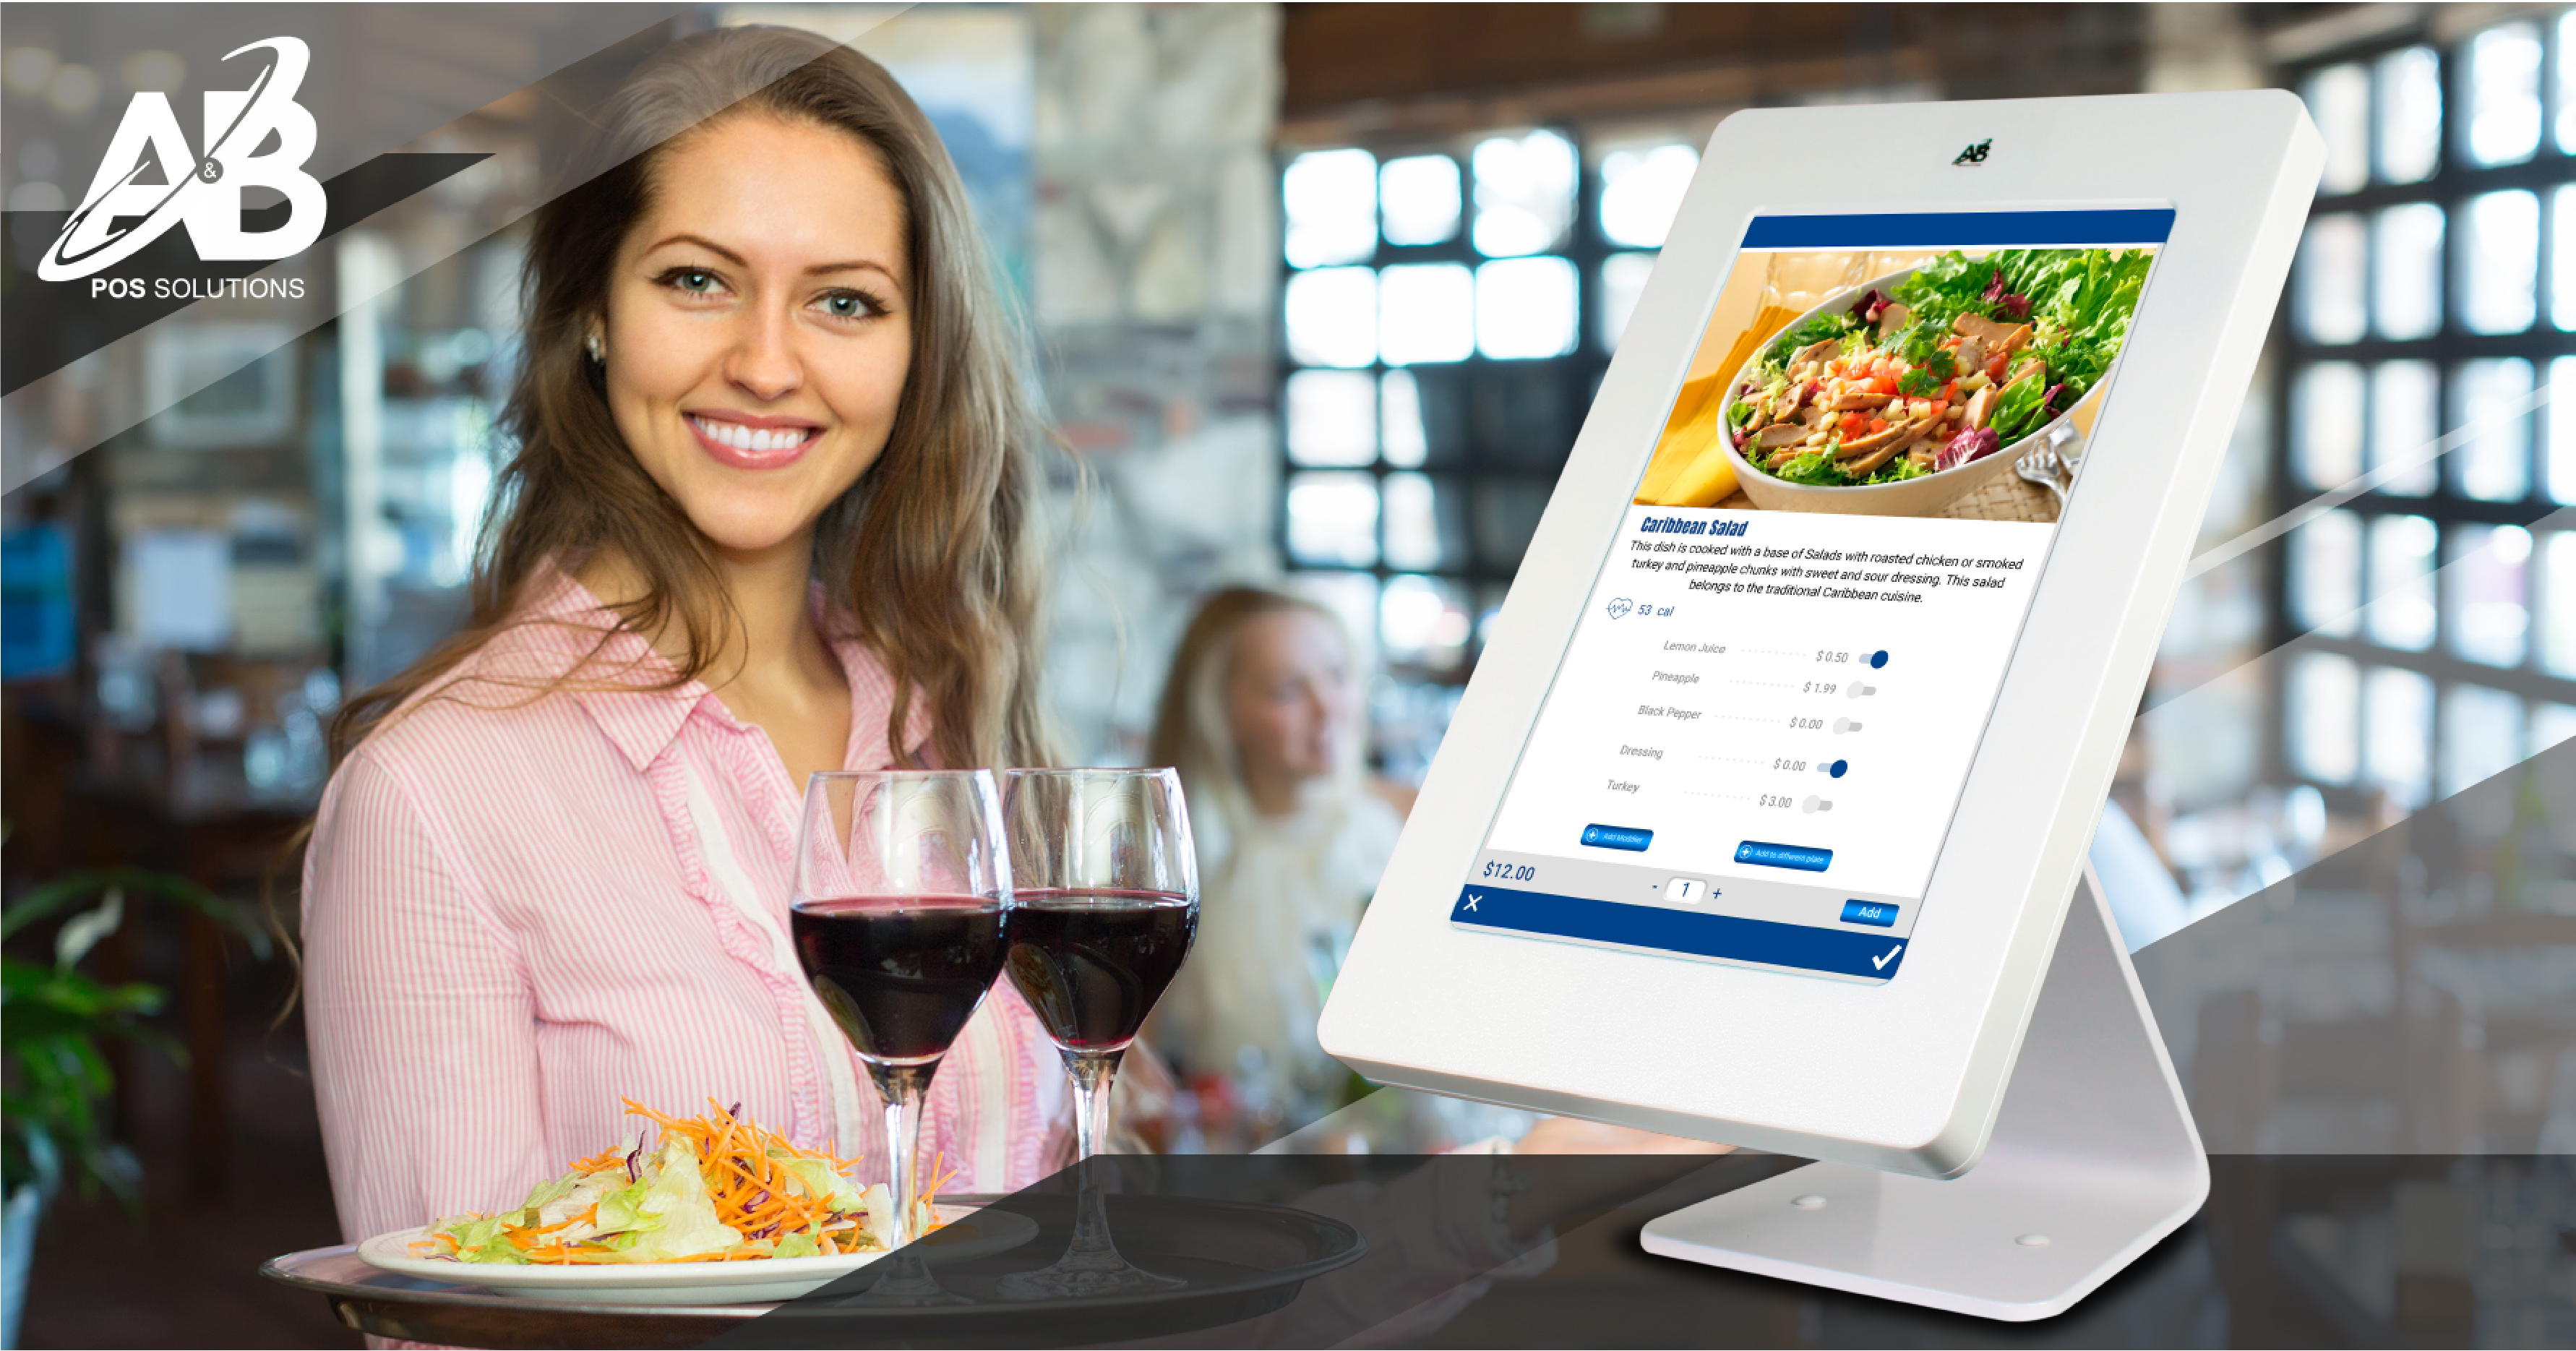 TOP FEATURES IN A POINT OF SALE SYSTEM THAT CATERS TO YOUR BAR OR RESTAURANT